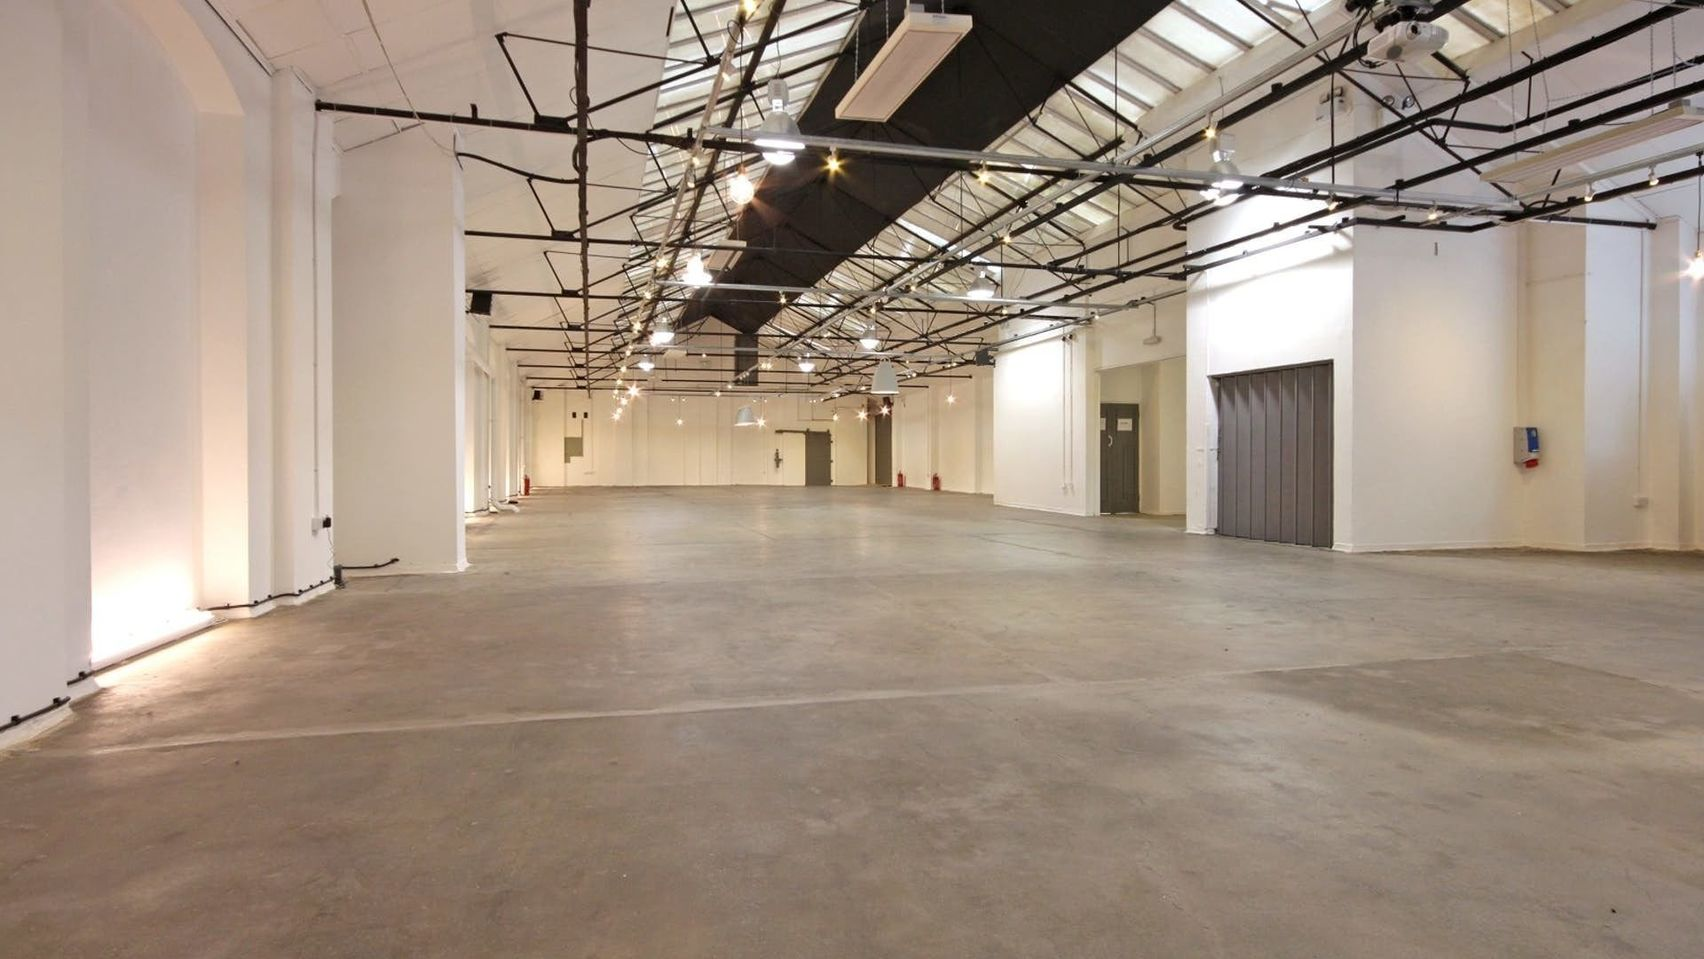 The Yard Shoreditch is a blank canvas Space with white walls and black beams